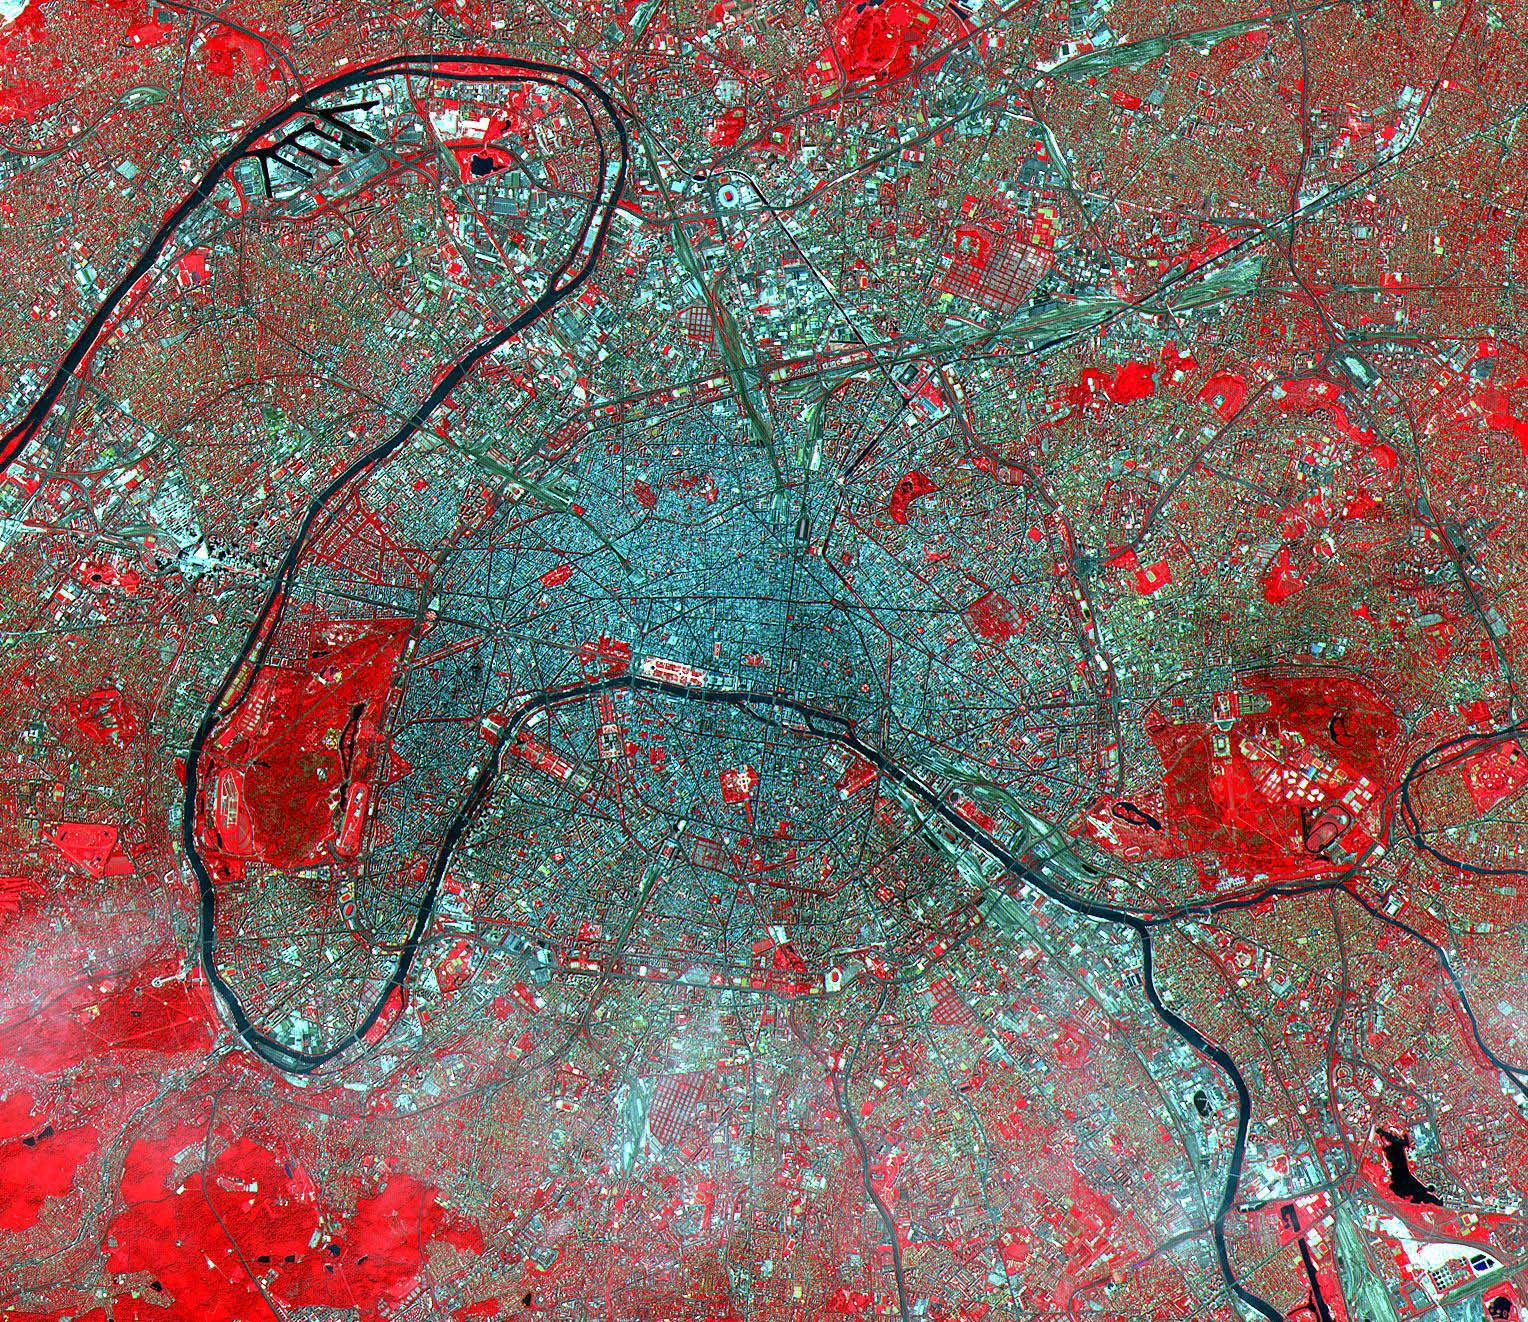 Photo satellite Paris, by NASA